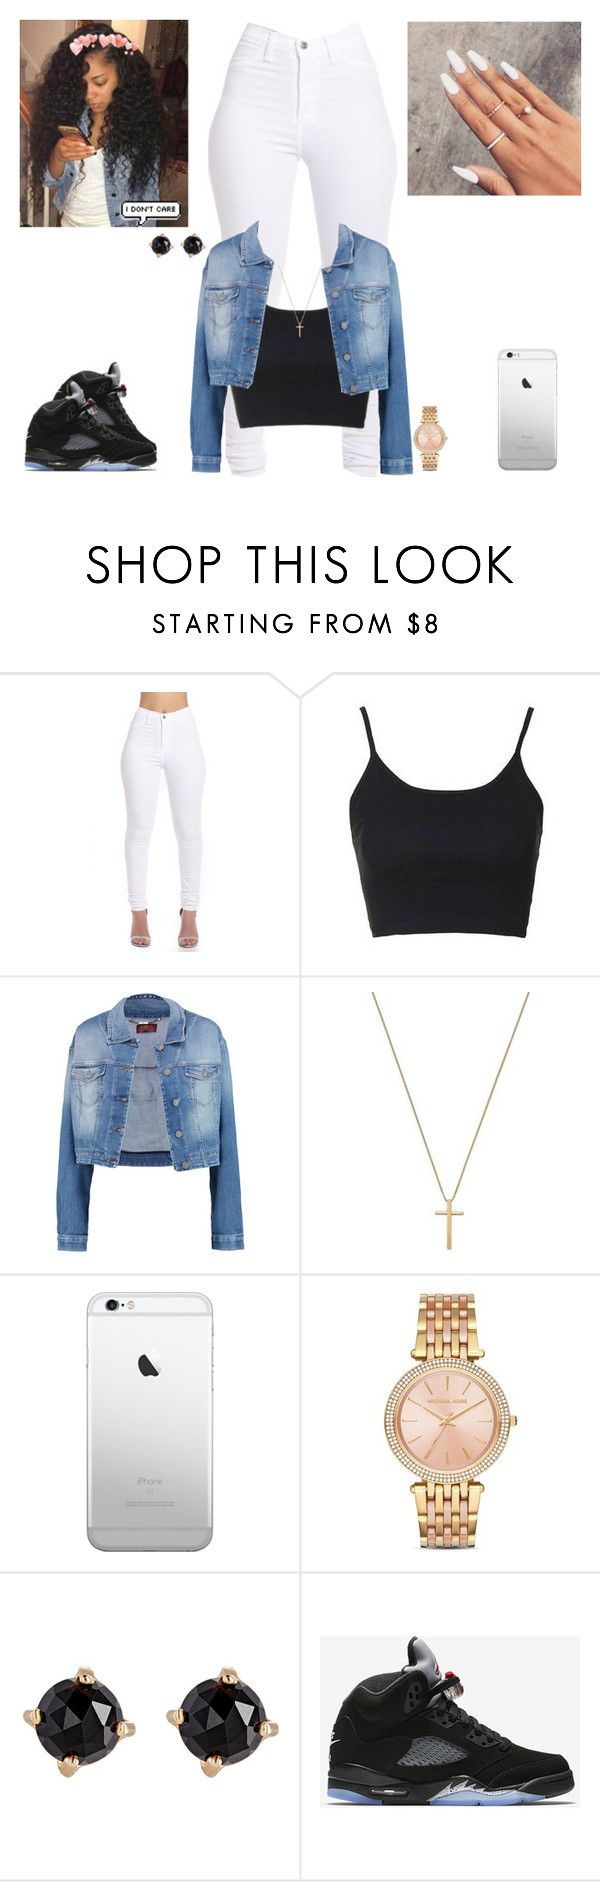 """❣❣❣"" by kira101-101 ❤ liked on Polyvore featuring Topshop, 7 For All Mankind, Gucci, Michael Kors, Irene Neuwirth and NIKE"